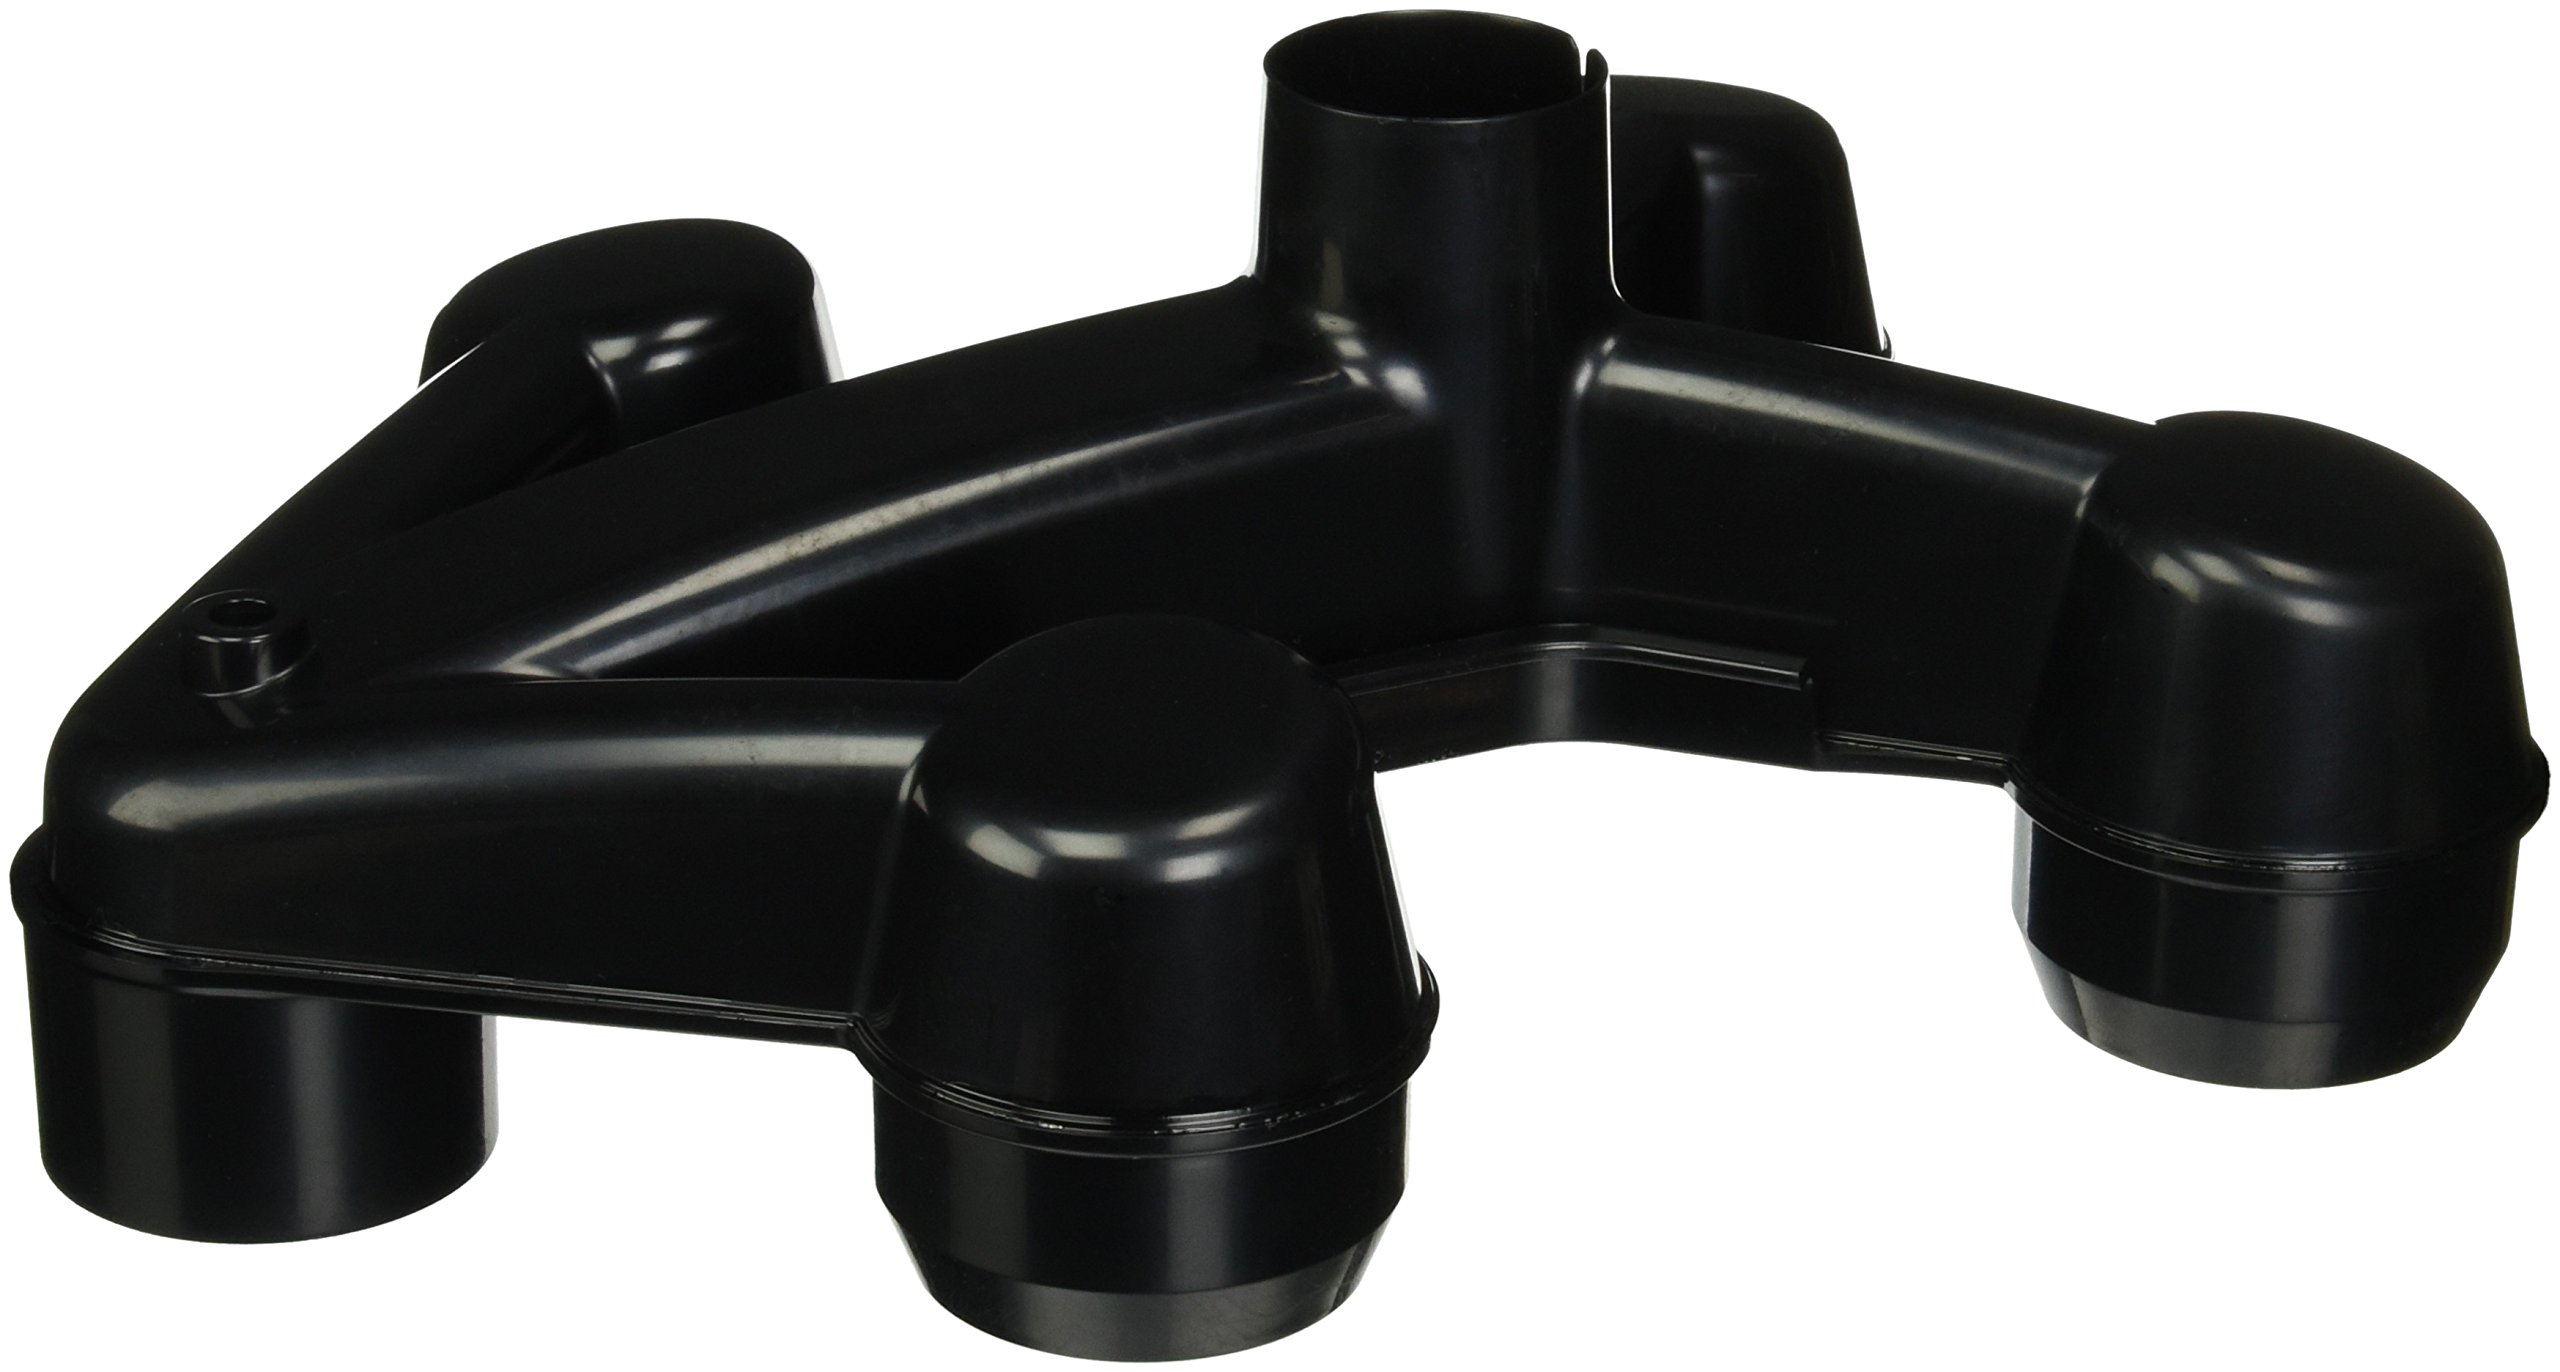 Zodiac R0357600 Manifold Assembly Replacement for Select Zodiac CV and CL Series Cartridge Pool and Spa Filters